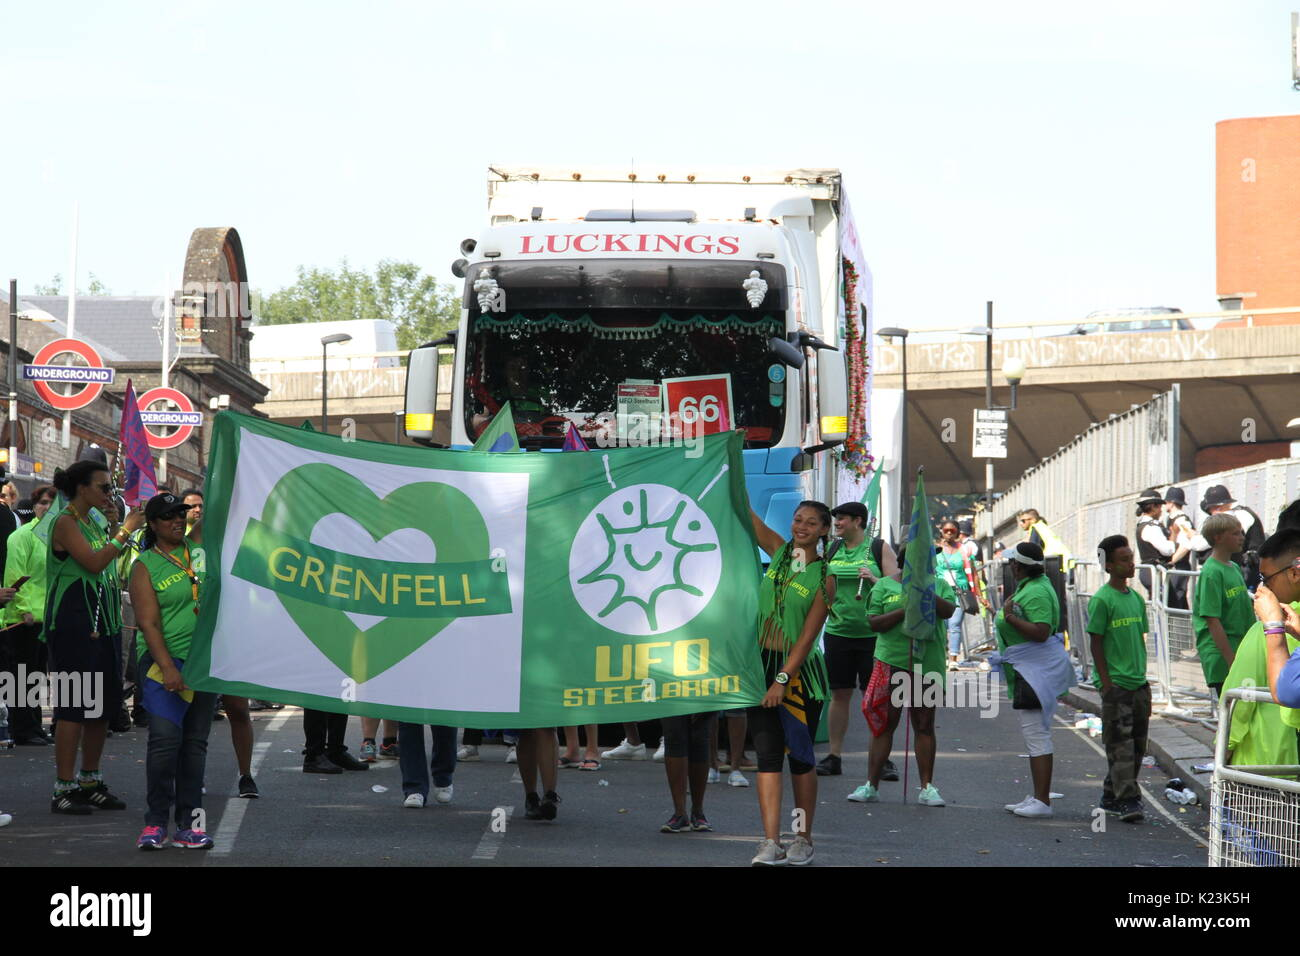 London, UK. 28th August, 2017. James bond actor Colin Salmon performs with UFO steel band in notting hill carnival 2017 in tribute to Grenfell Tower victims Credit: Daniel Samray/Alamy Live News - Stock Image